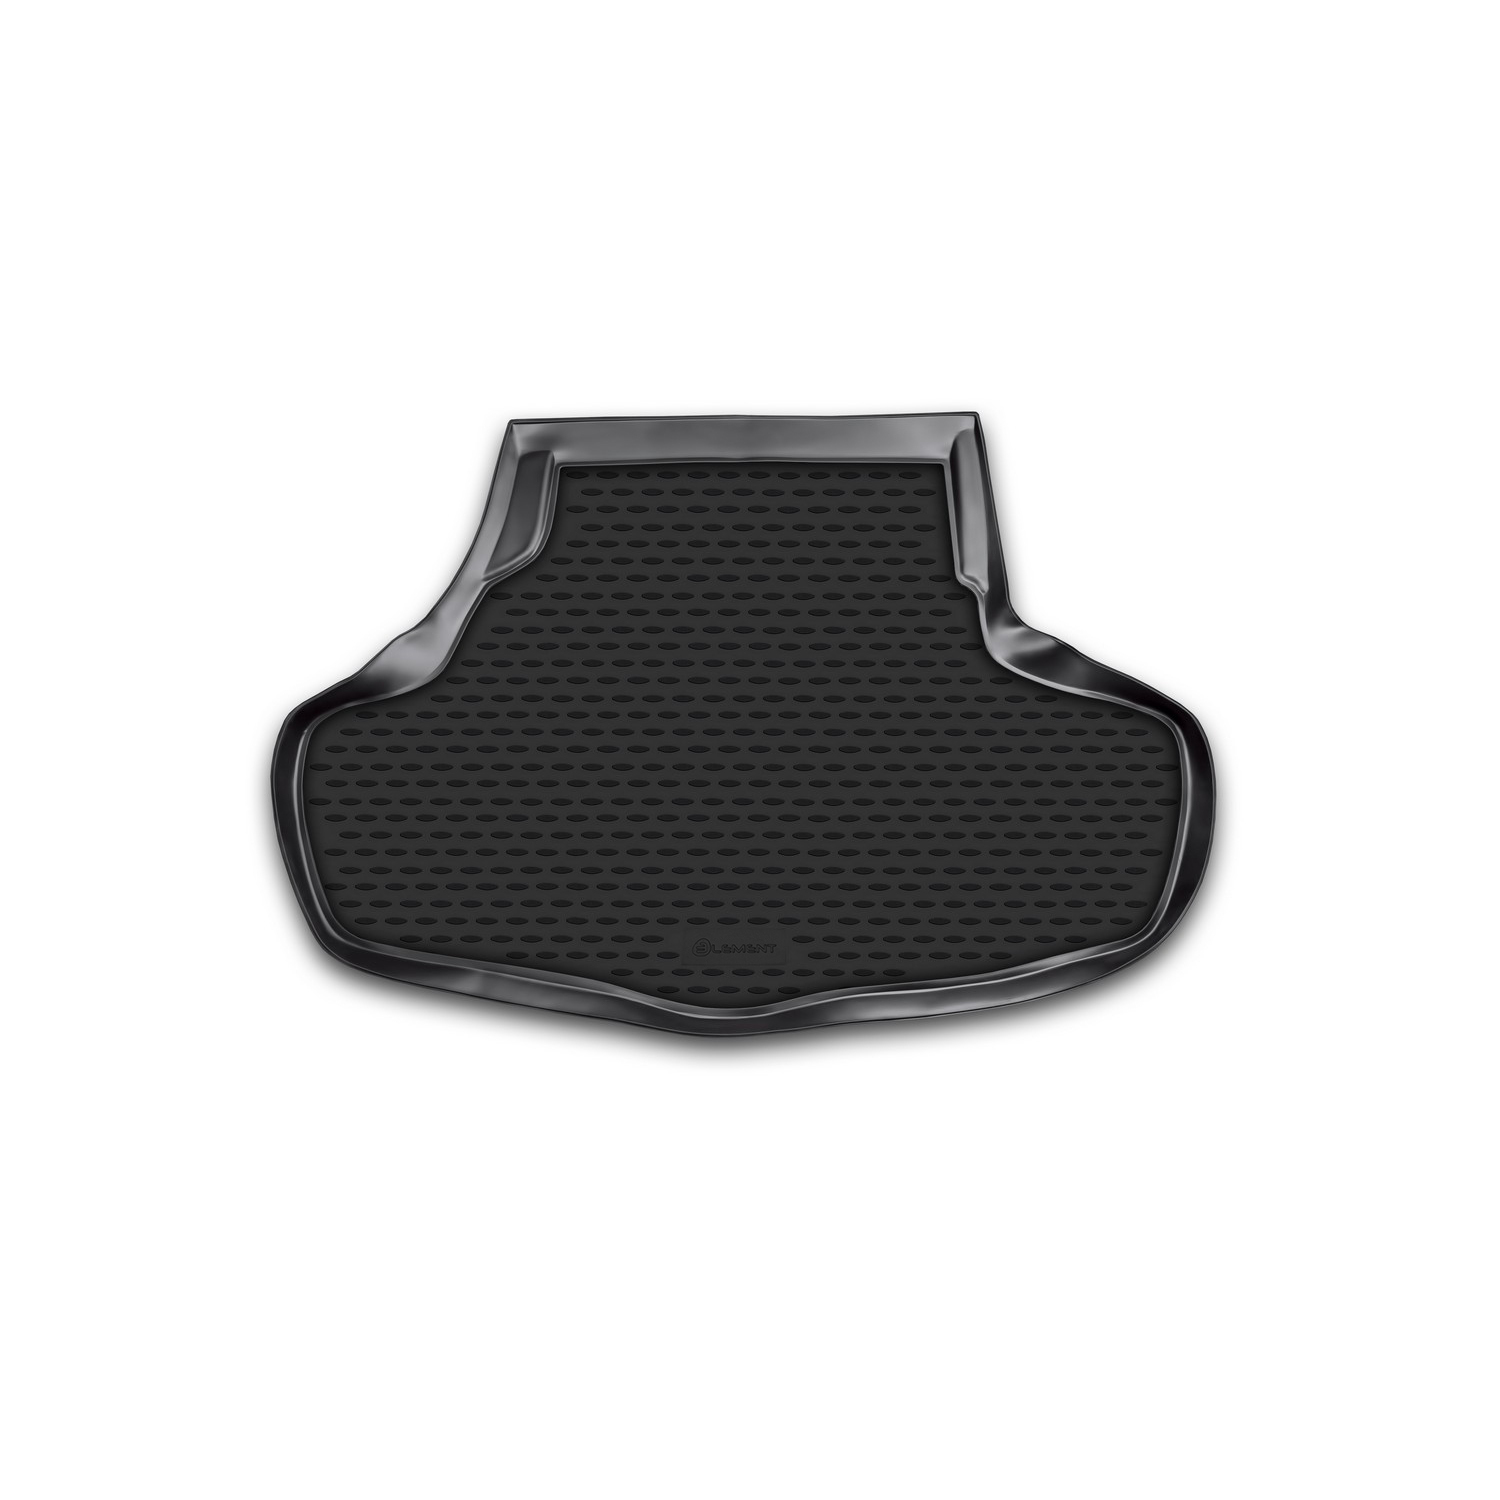 Trunk Mat For INFINITI G37X 01/2009, ETS. NLC.76.06.B10